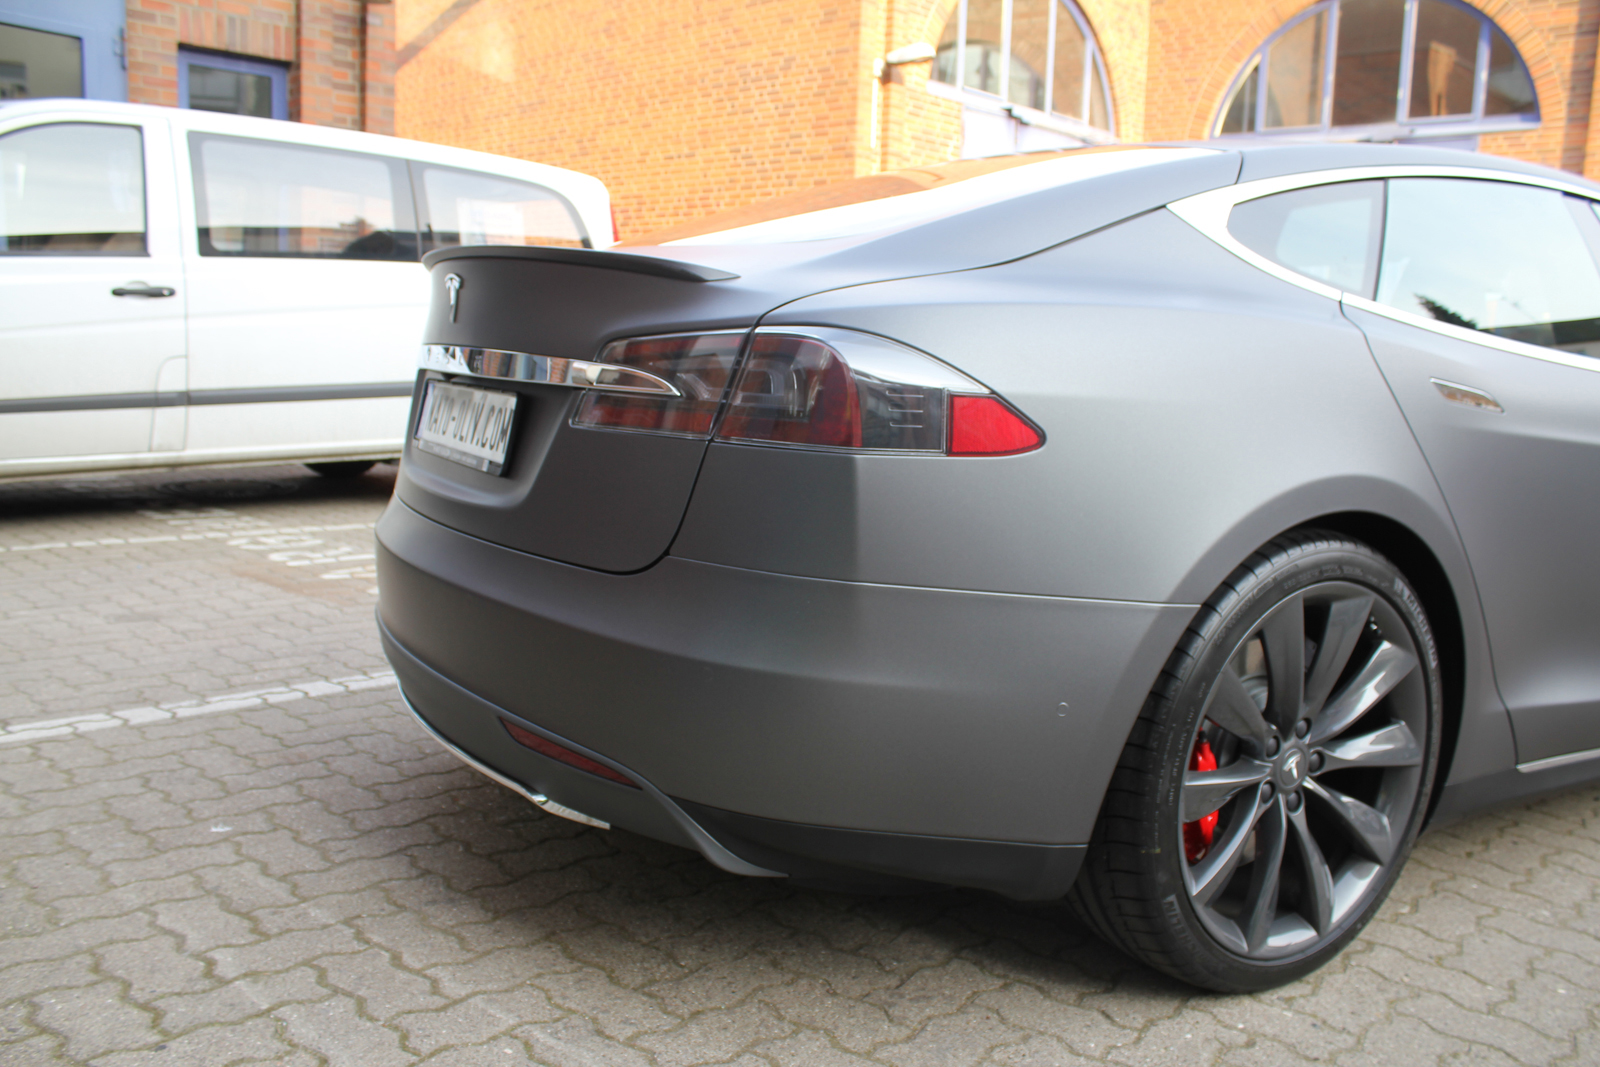 TESLA_MODEL-S_CAR-WRAPPING_FOLIERUNG_DARK_GREY_MATT_METALLIC_07